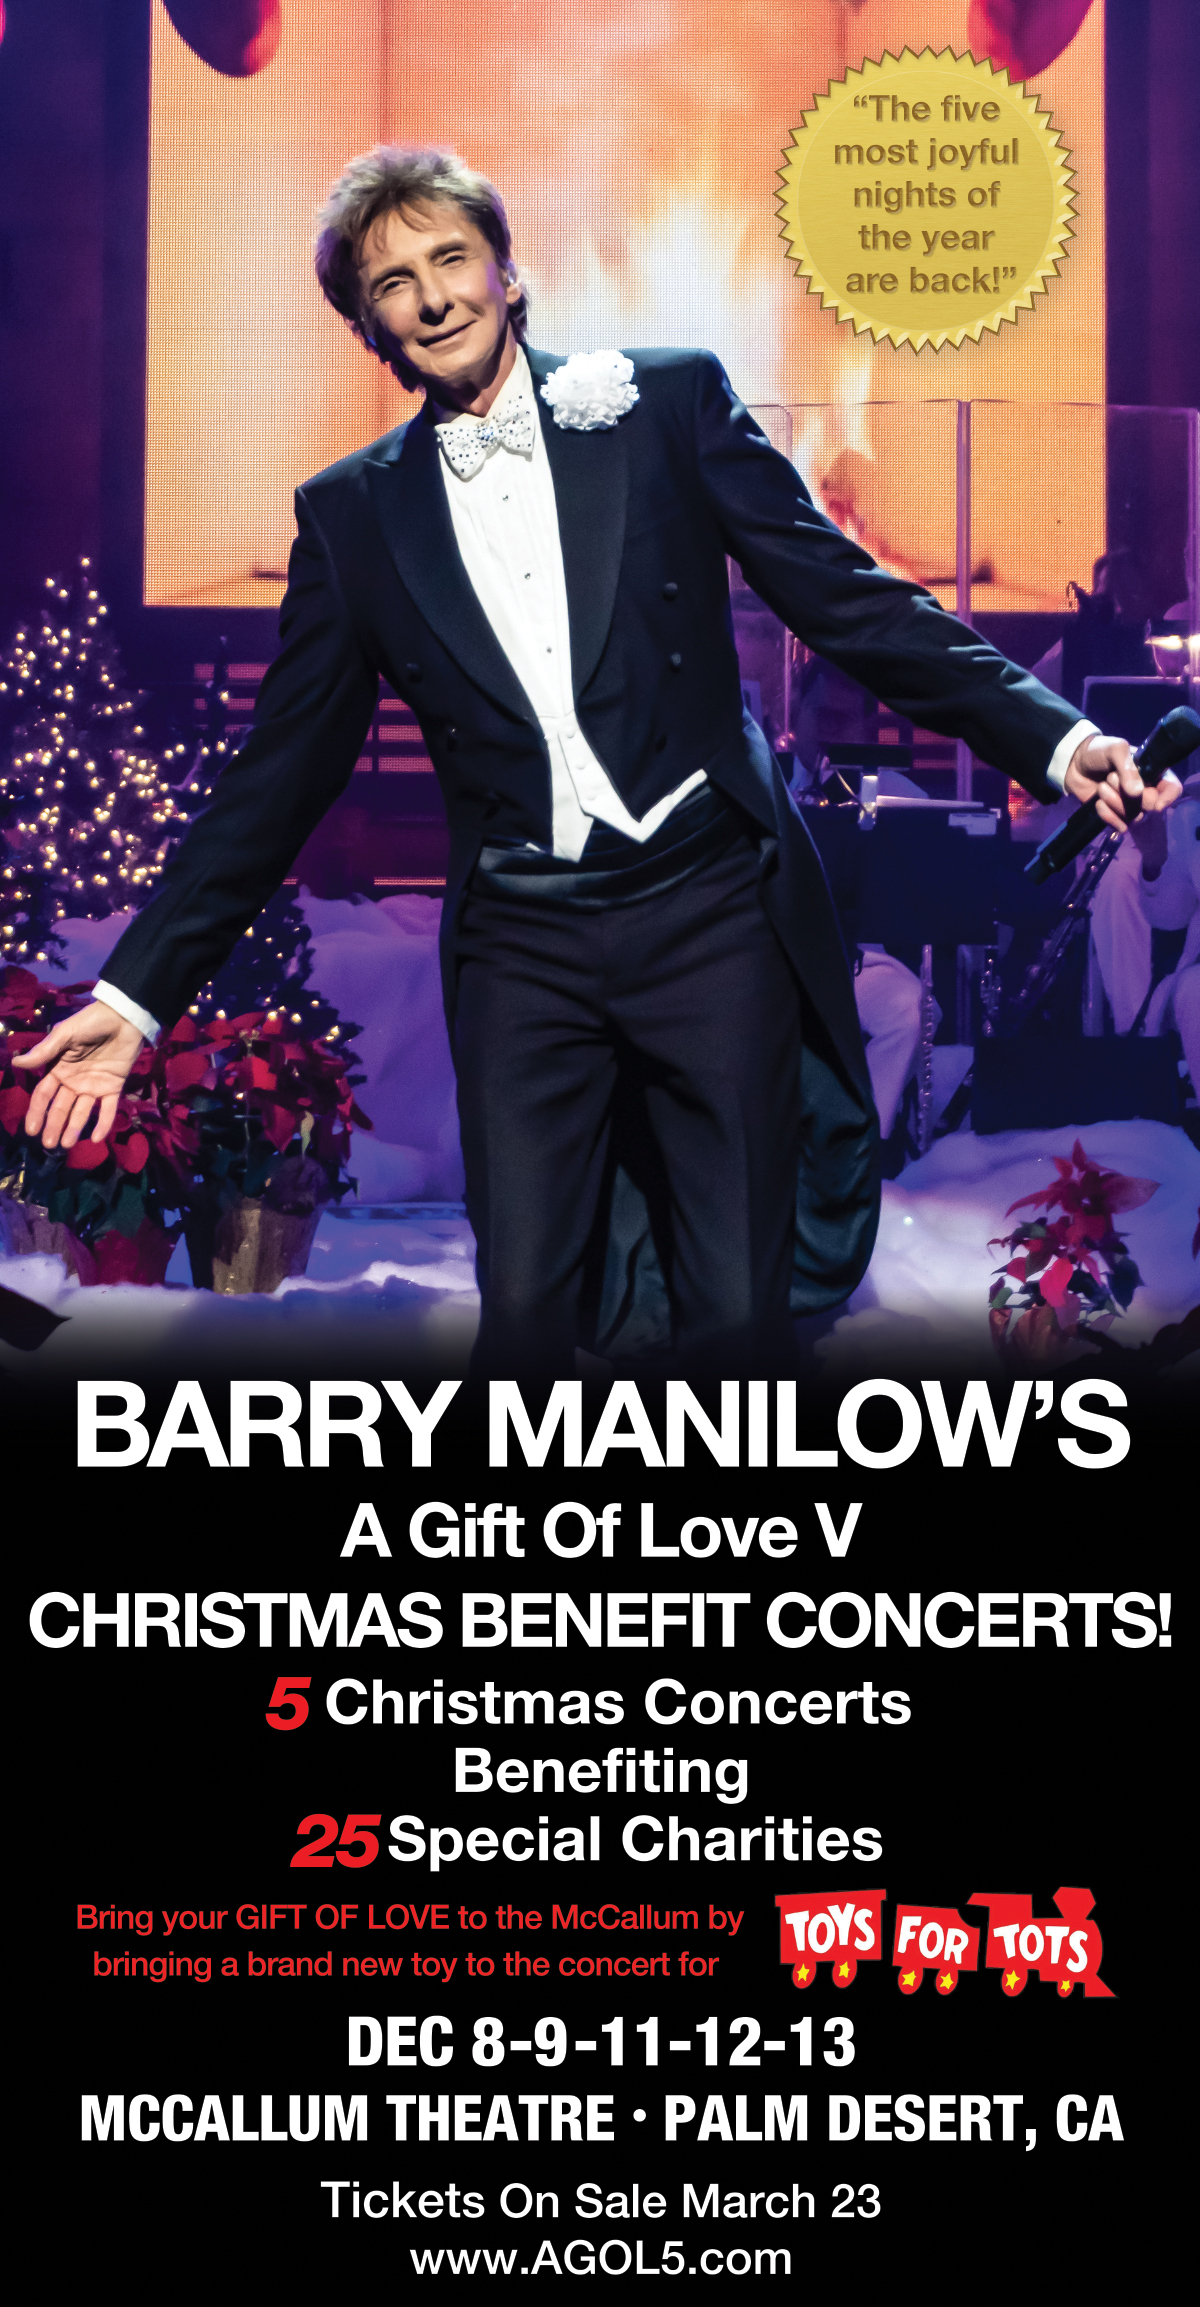 Christmas Love Dec 1 2020 Barry Manilow's 2020 A Gift of Love Christmas Charity Concerts